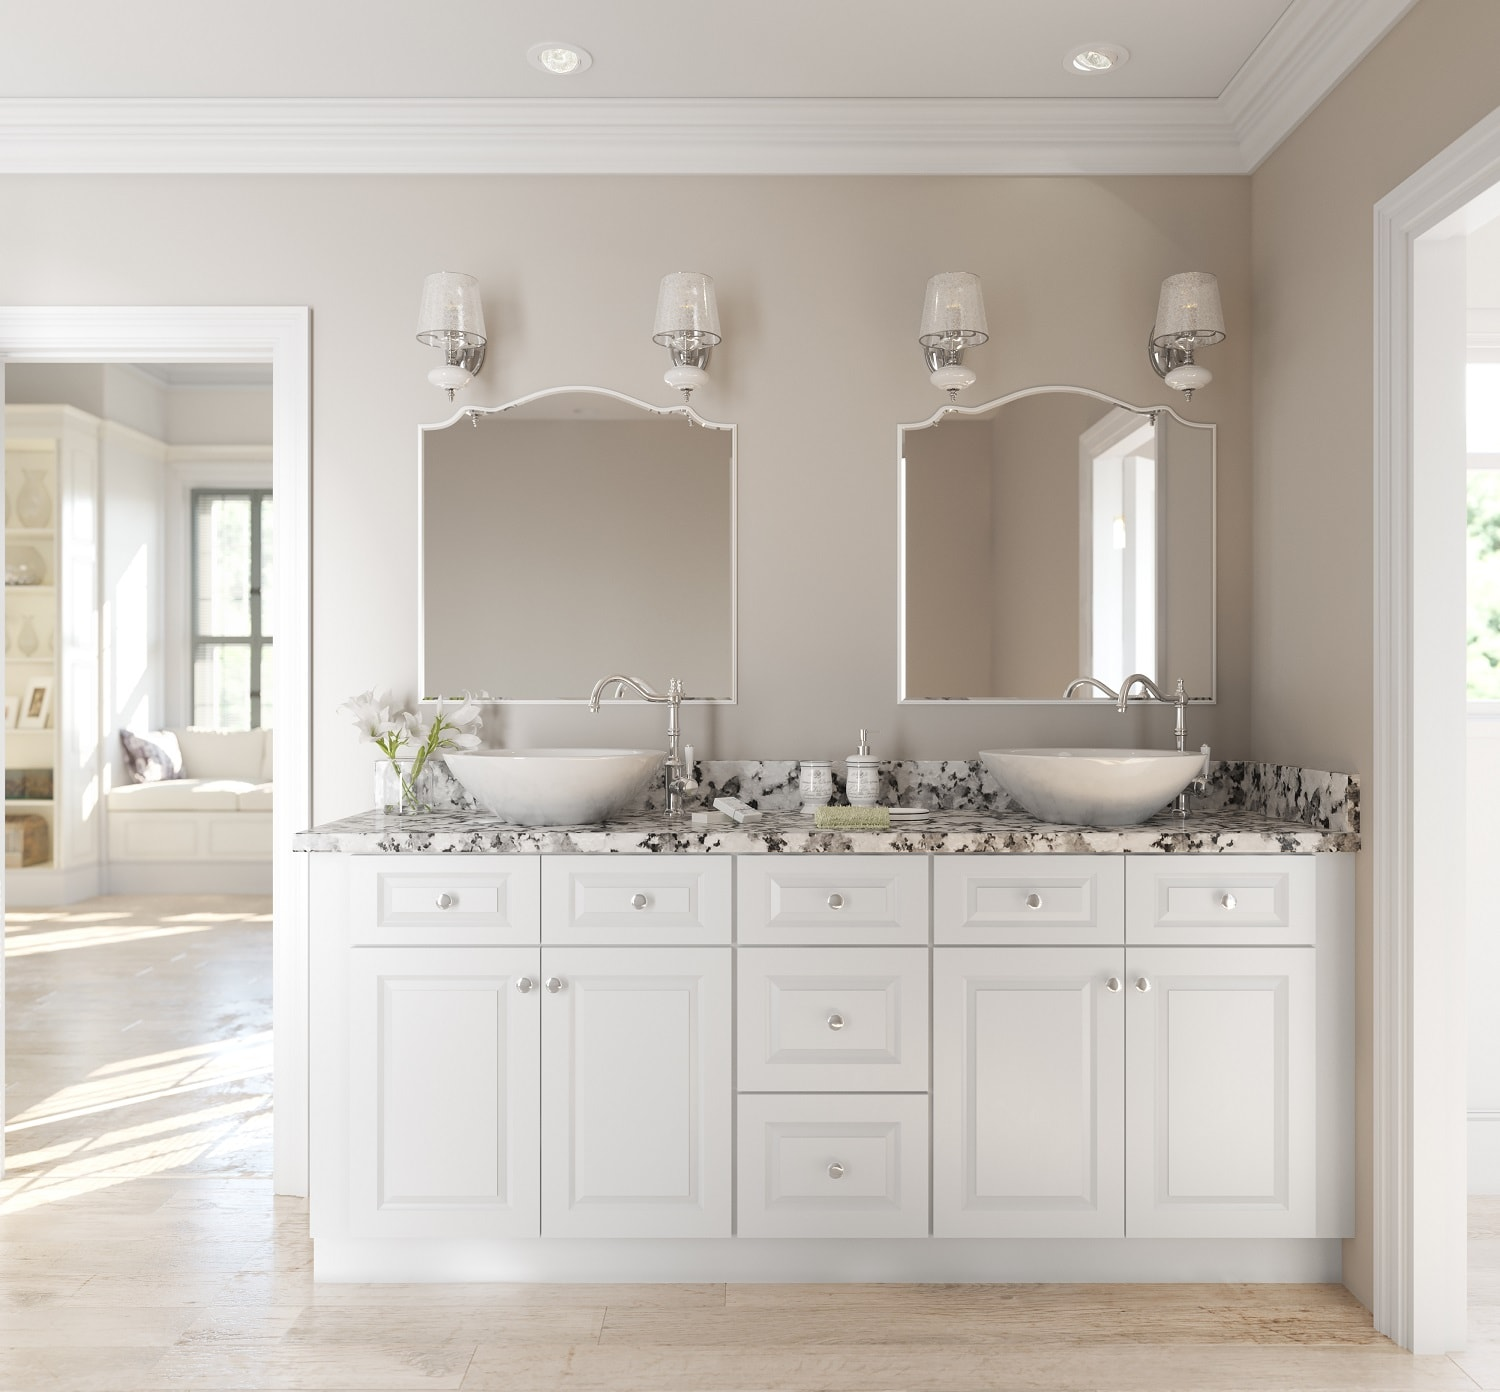 Lakewood white ready to assemble bathroom vanities cabinets bathroom vanities vanities White bathroom vanity cabinets